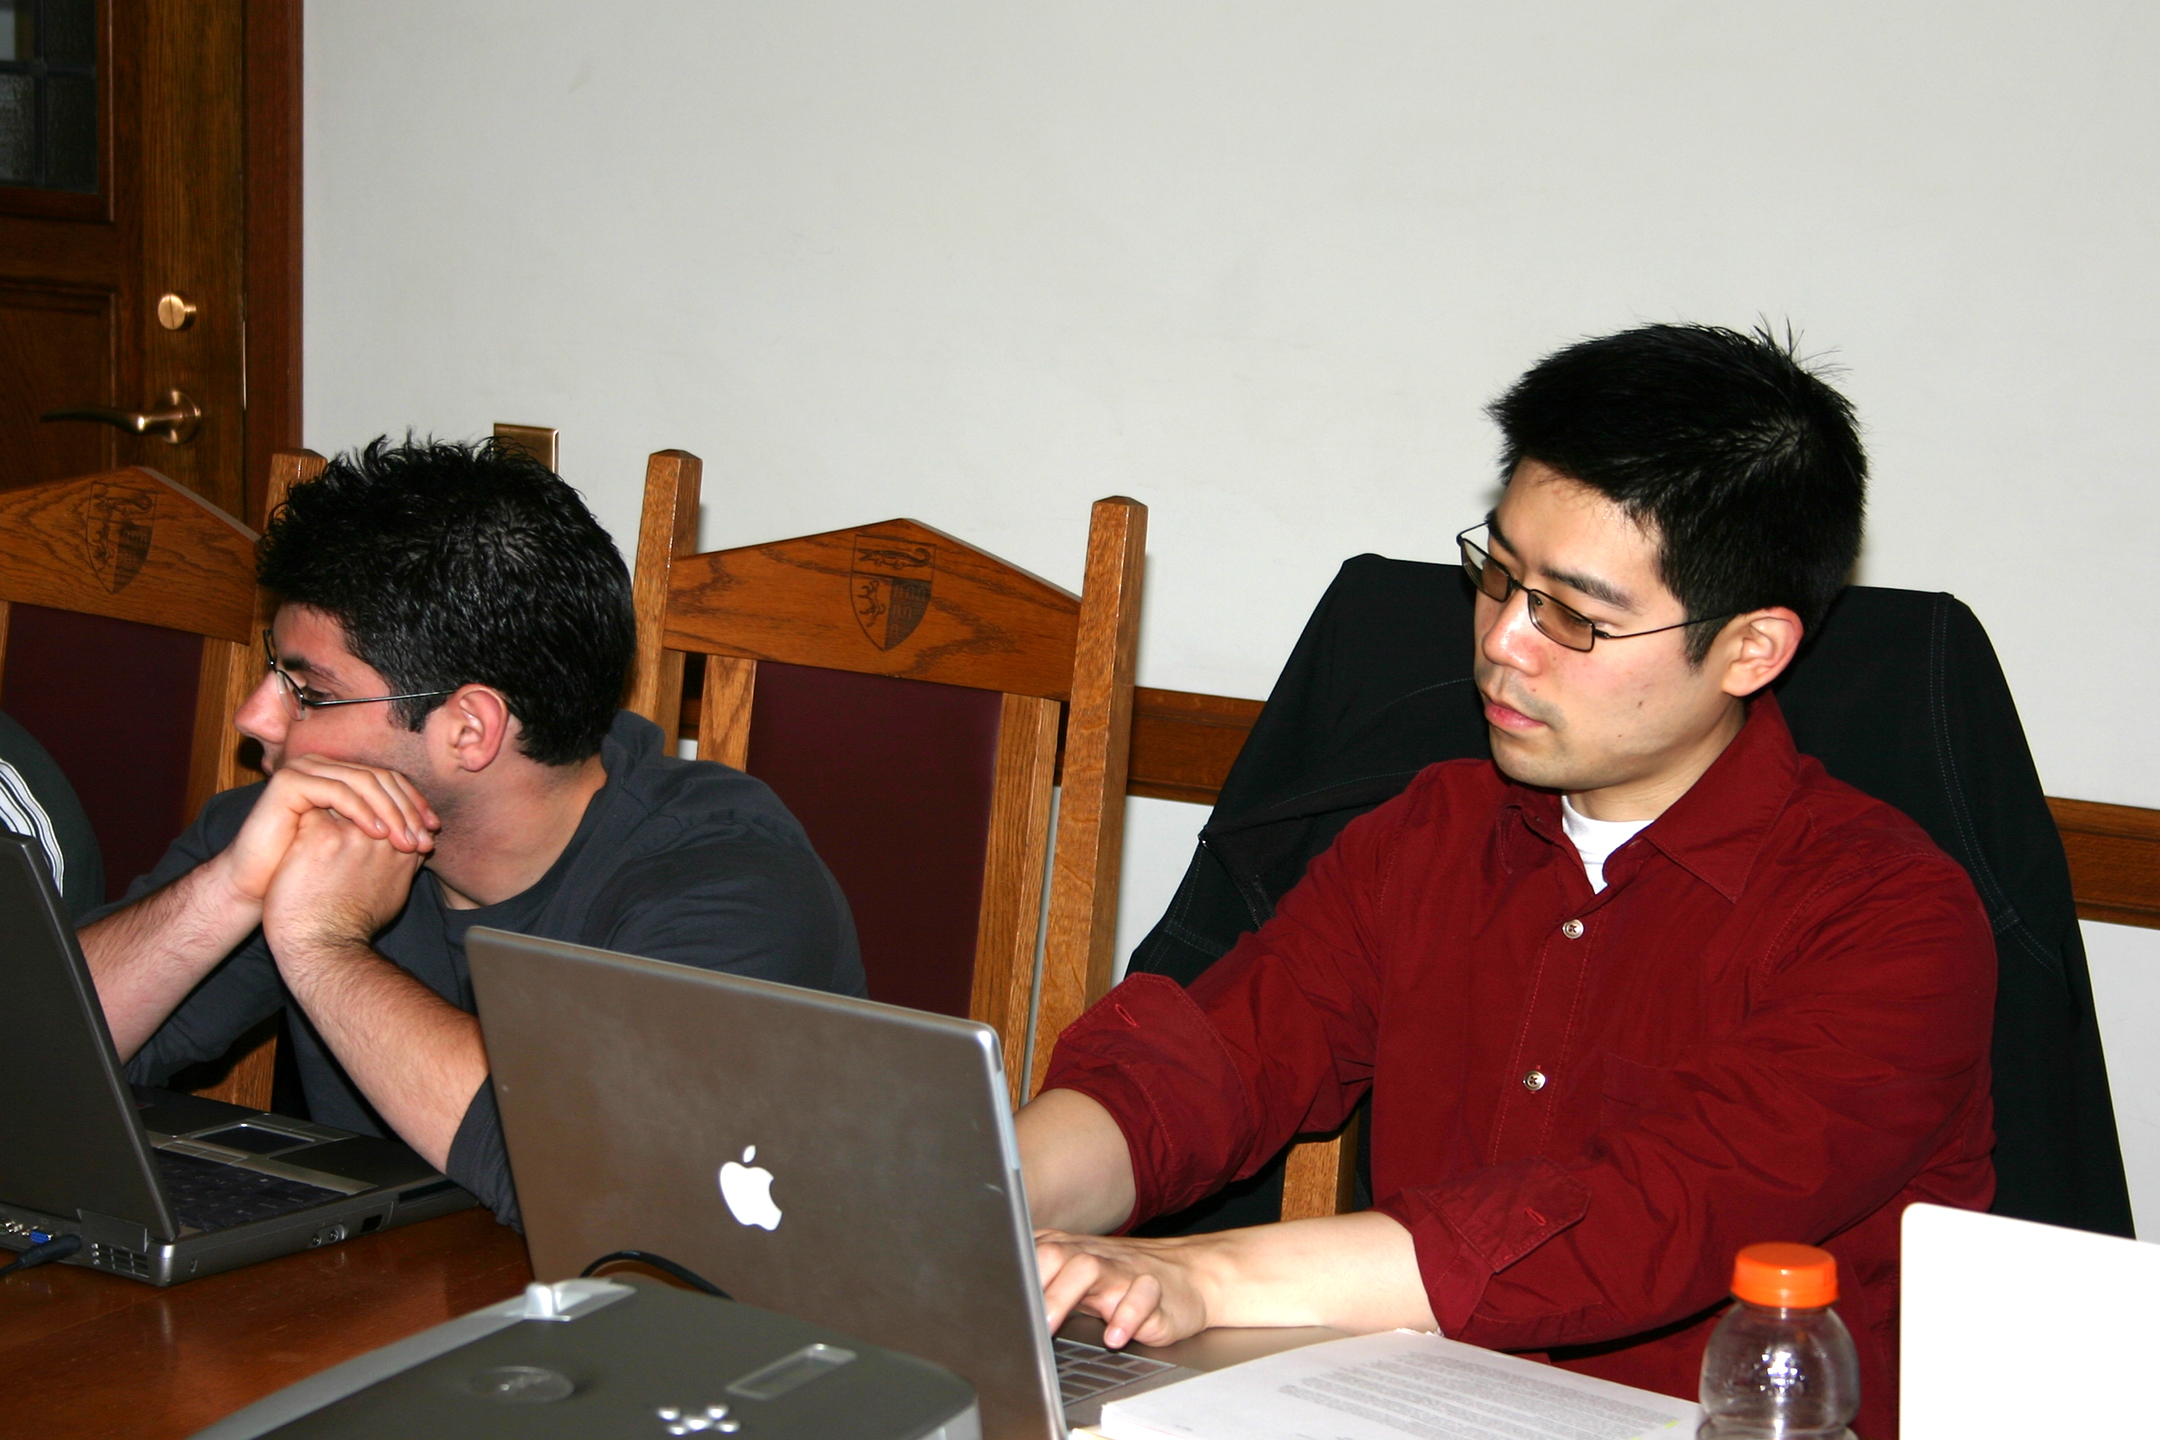 Steven Winter '08 and Andrew Park '08